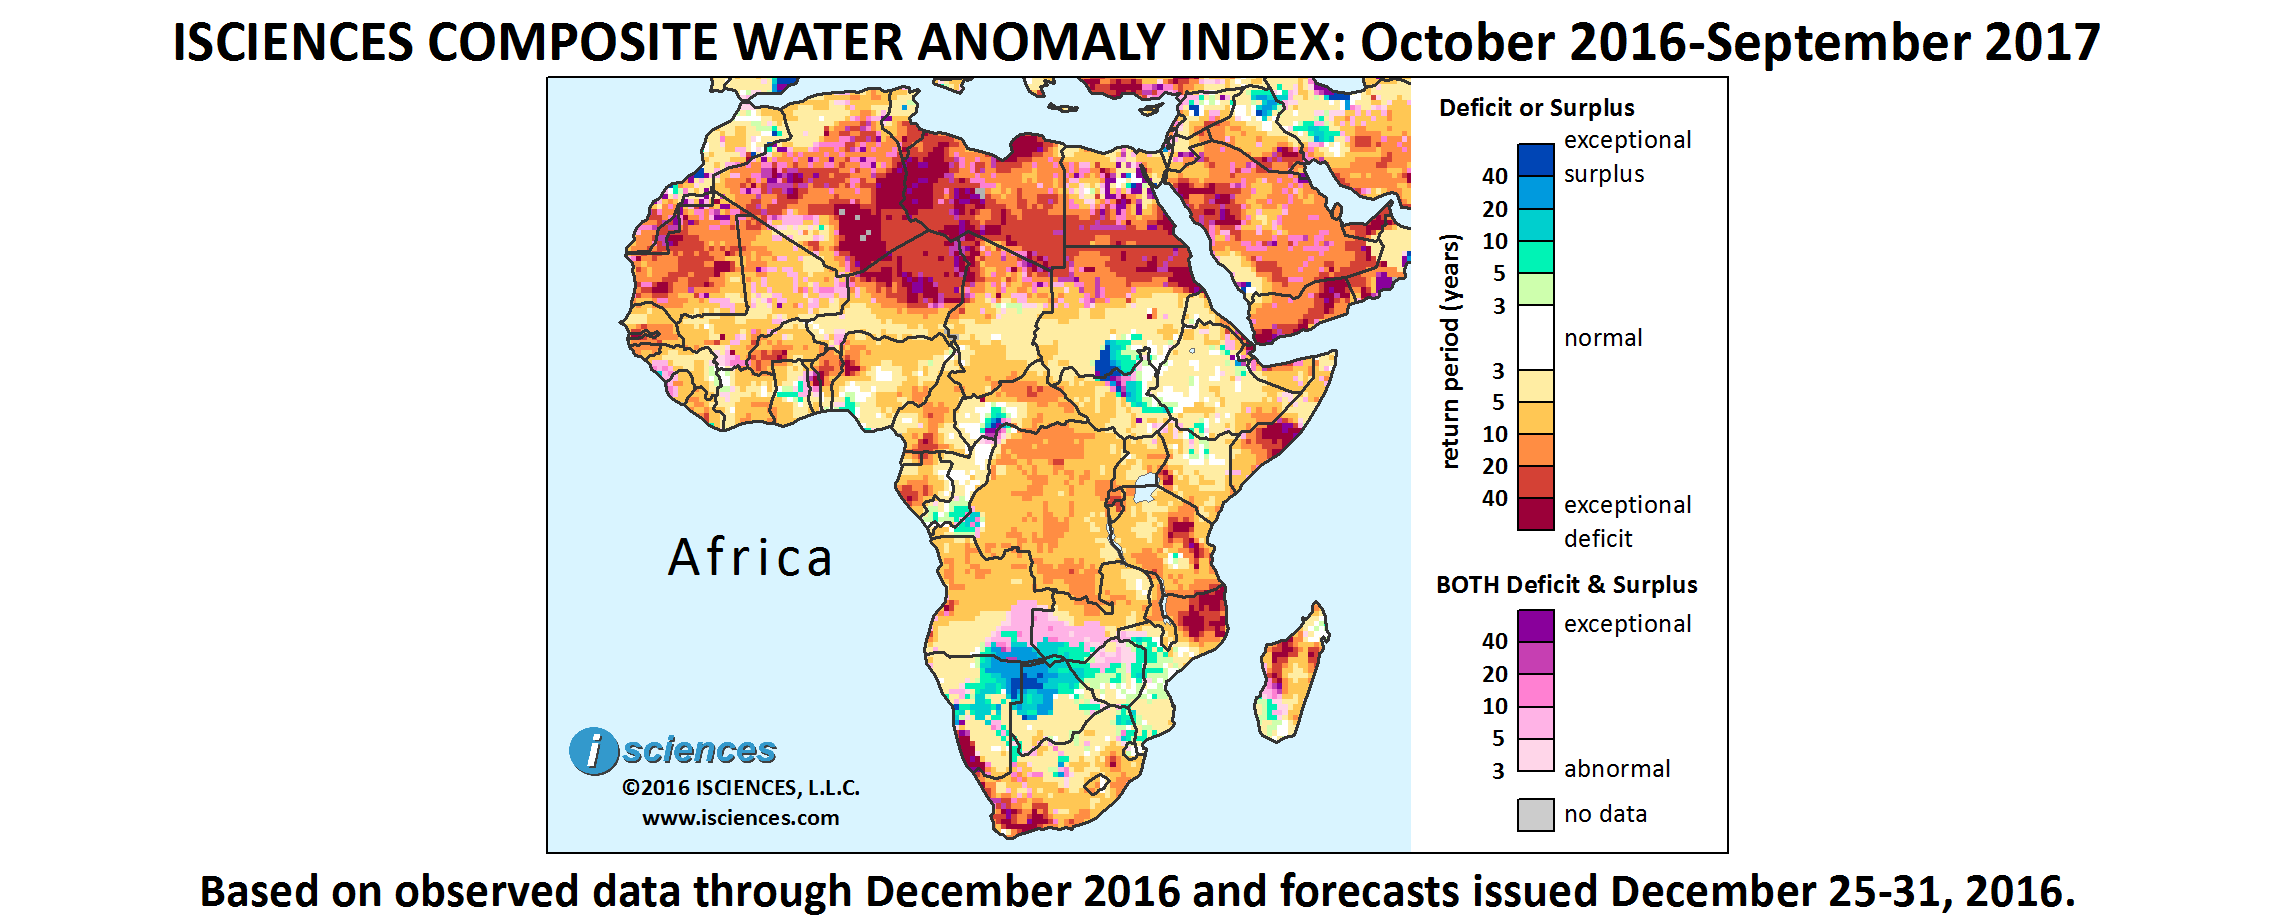 ISciences_Africa_R201612_12mo_twit_pic.png